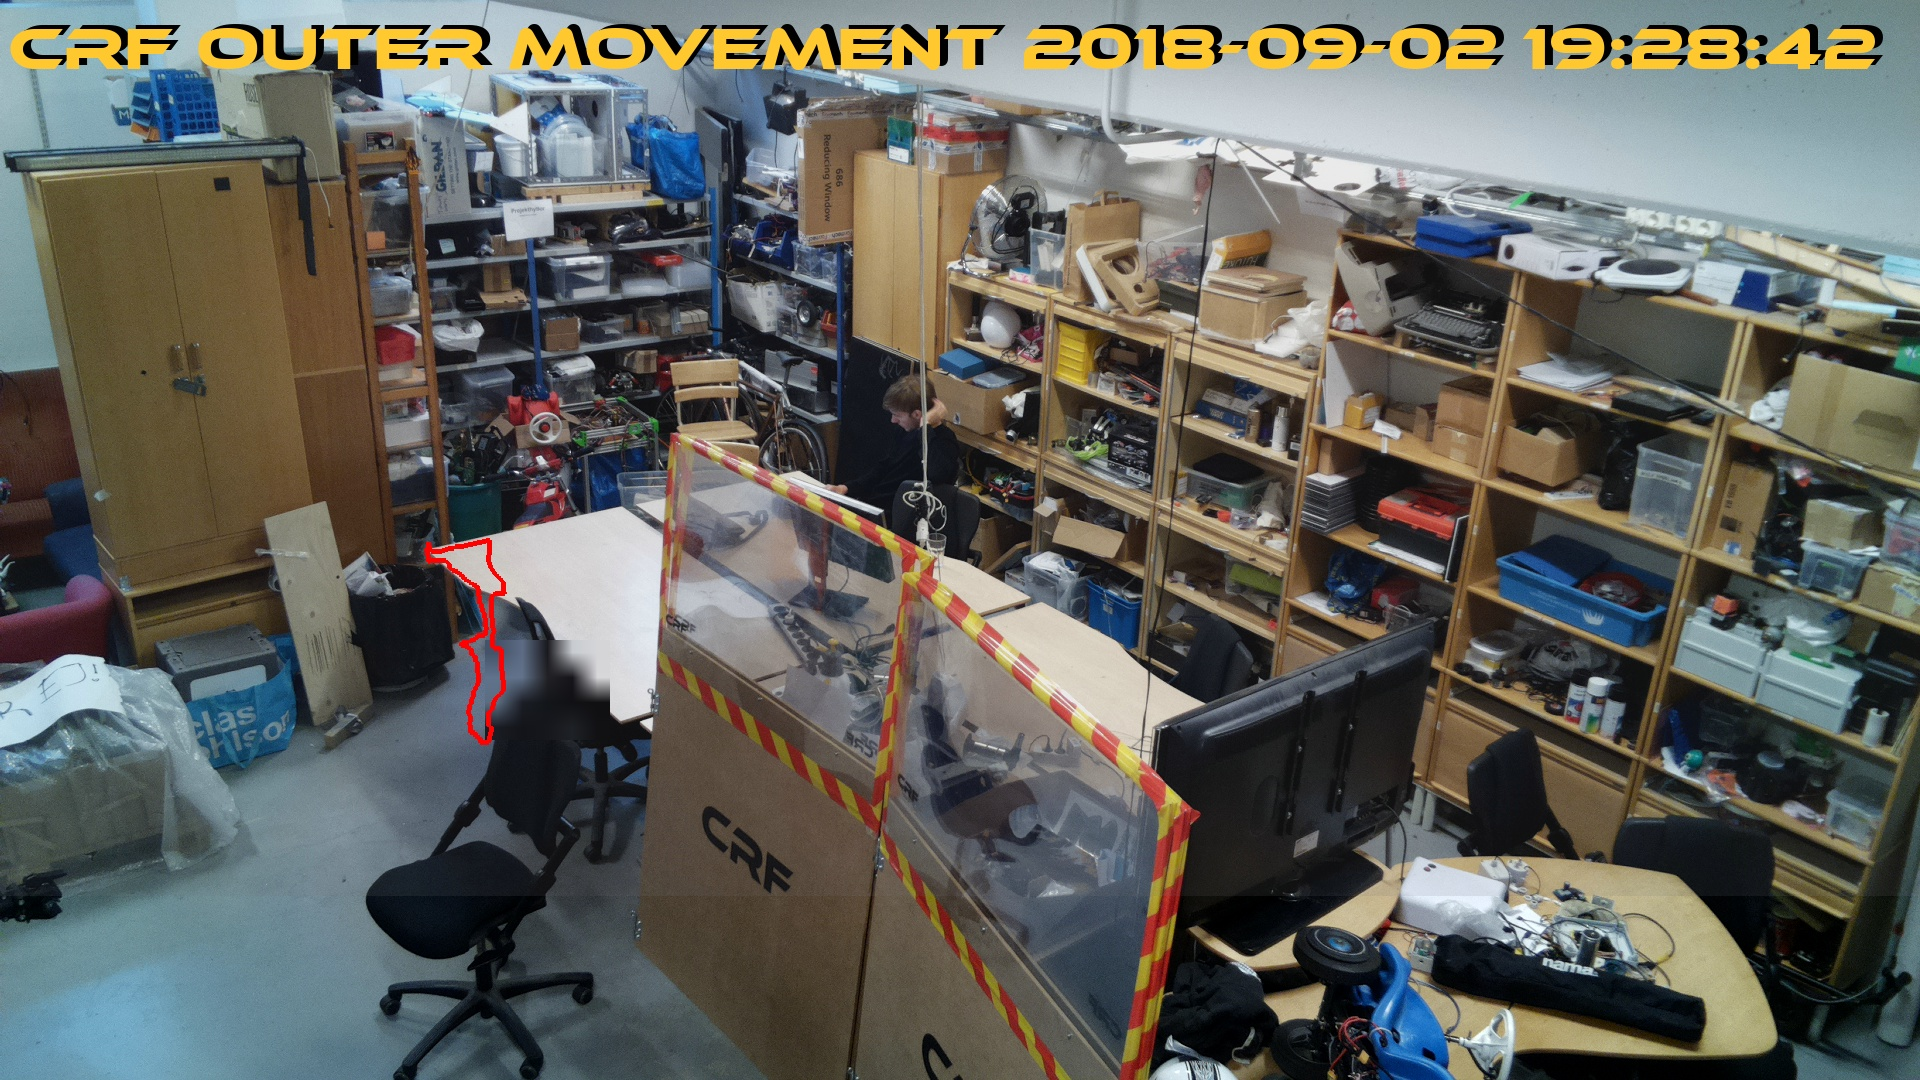 A picture of latest movement of webcam Outer